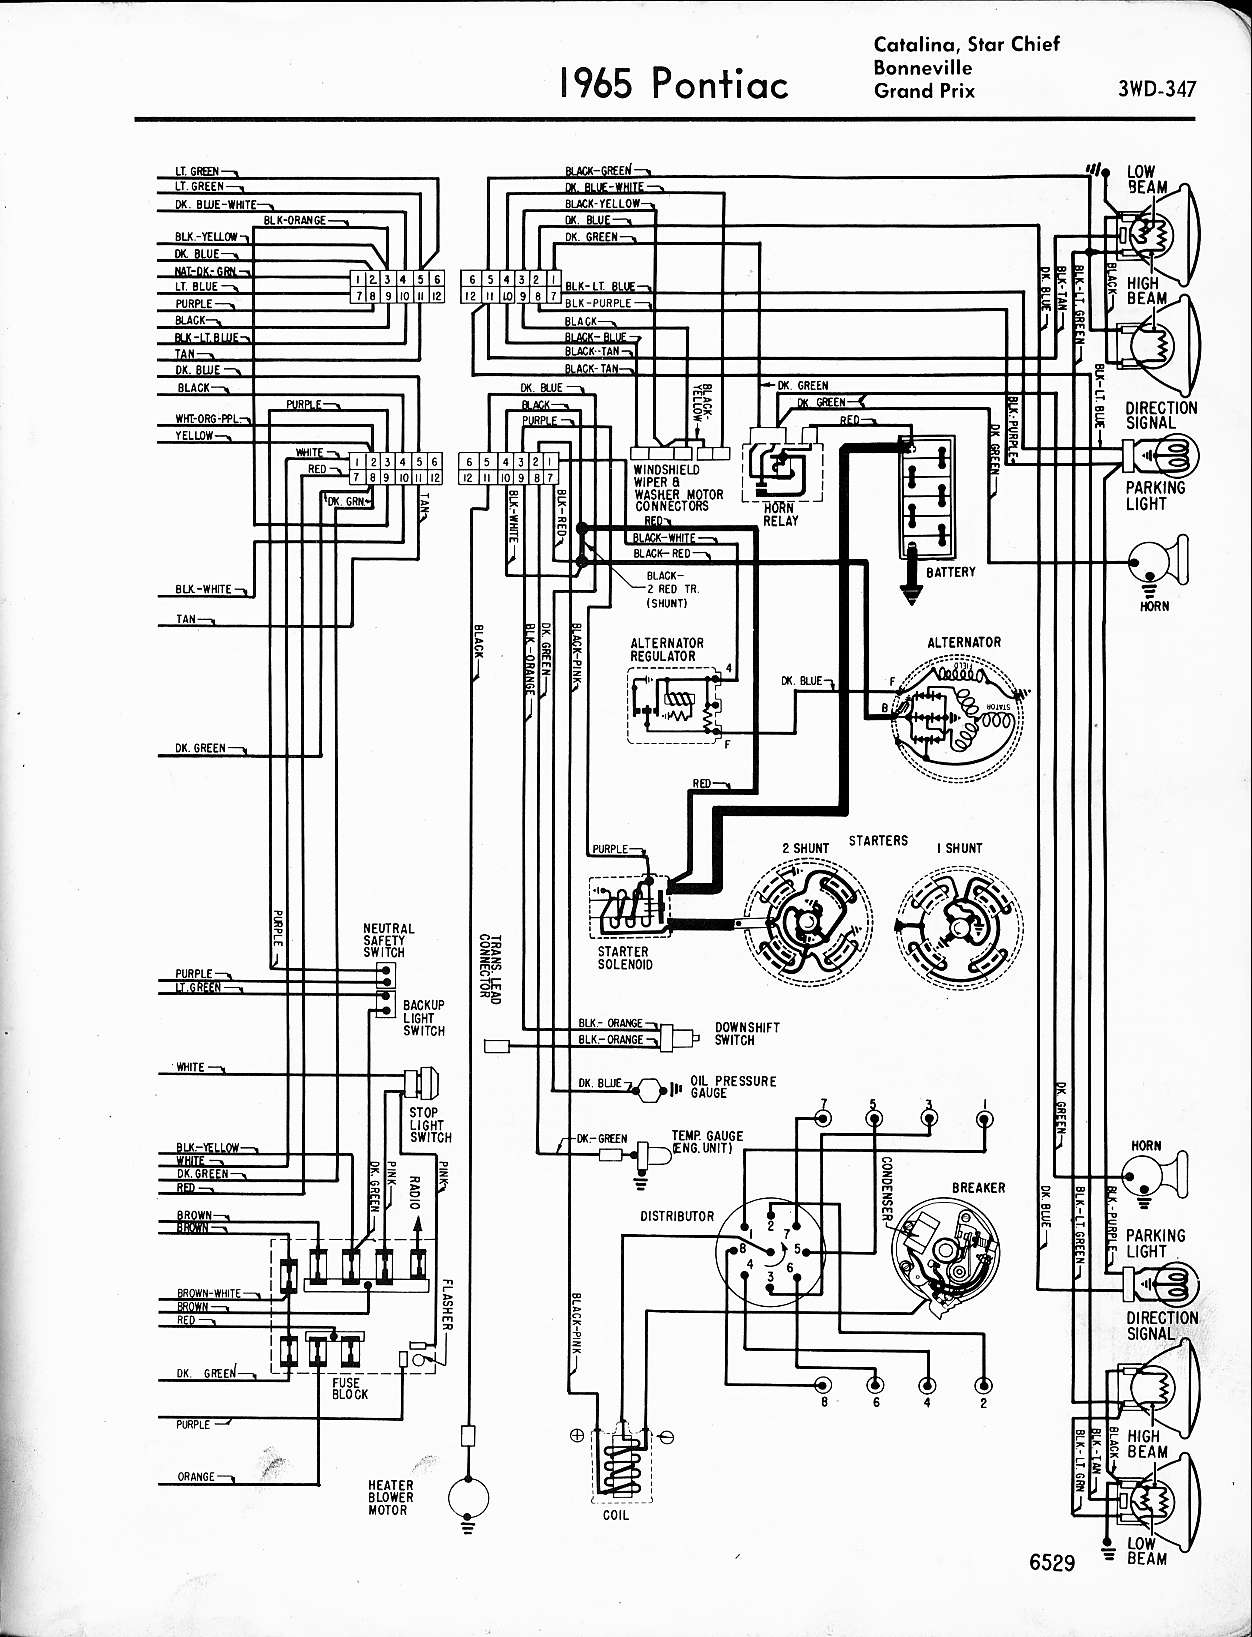 Pontiac Sunfire Starter Wiring Diagram on pontiac grand am wiring diagram, 2001 pontiac montana starter wiring diagram, 1999 grand prix engine diagram, 2002 pontiac sunfire cooling system diagram, 2000 pontiac grand prix engine diagram, 1998 pontiac grand prix starter wiring diagram, 2000 pontiac montana wiring-diagram, 2000 dodge intrepid starter wiring diagram, pontiac sunfire radio wiring diagram, 2003 pontiac aztek starter wiring diagram, 2000 pontiac montana engine diagram, 2002 pontiac grand prix starter wiring diagram, 2002 gmc safari starter wiring diagram, push button starter wiring diagram, motor starter wiring diagram, pontiac sunfire exhaust diagram, 2000 chevy cavalier starter wiring diagram, jeep grand cherokee starter wiring diagram, 2005 pontiac grand prix starter wiring diagram, 2009 pontiac g8 starter wiring diagram,